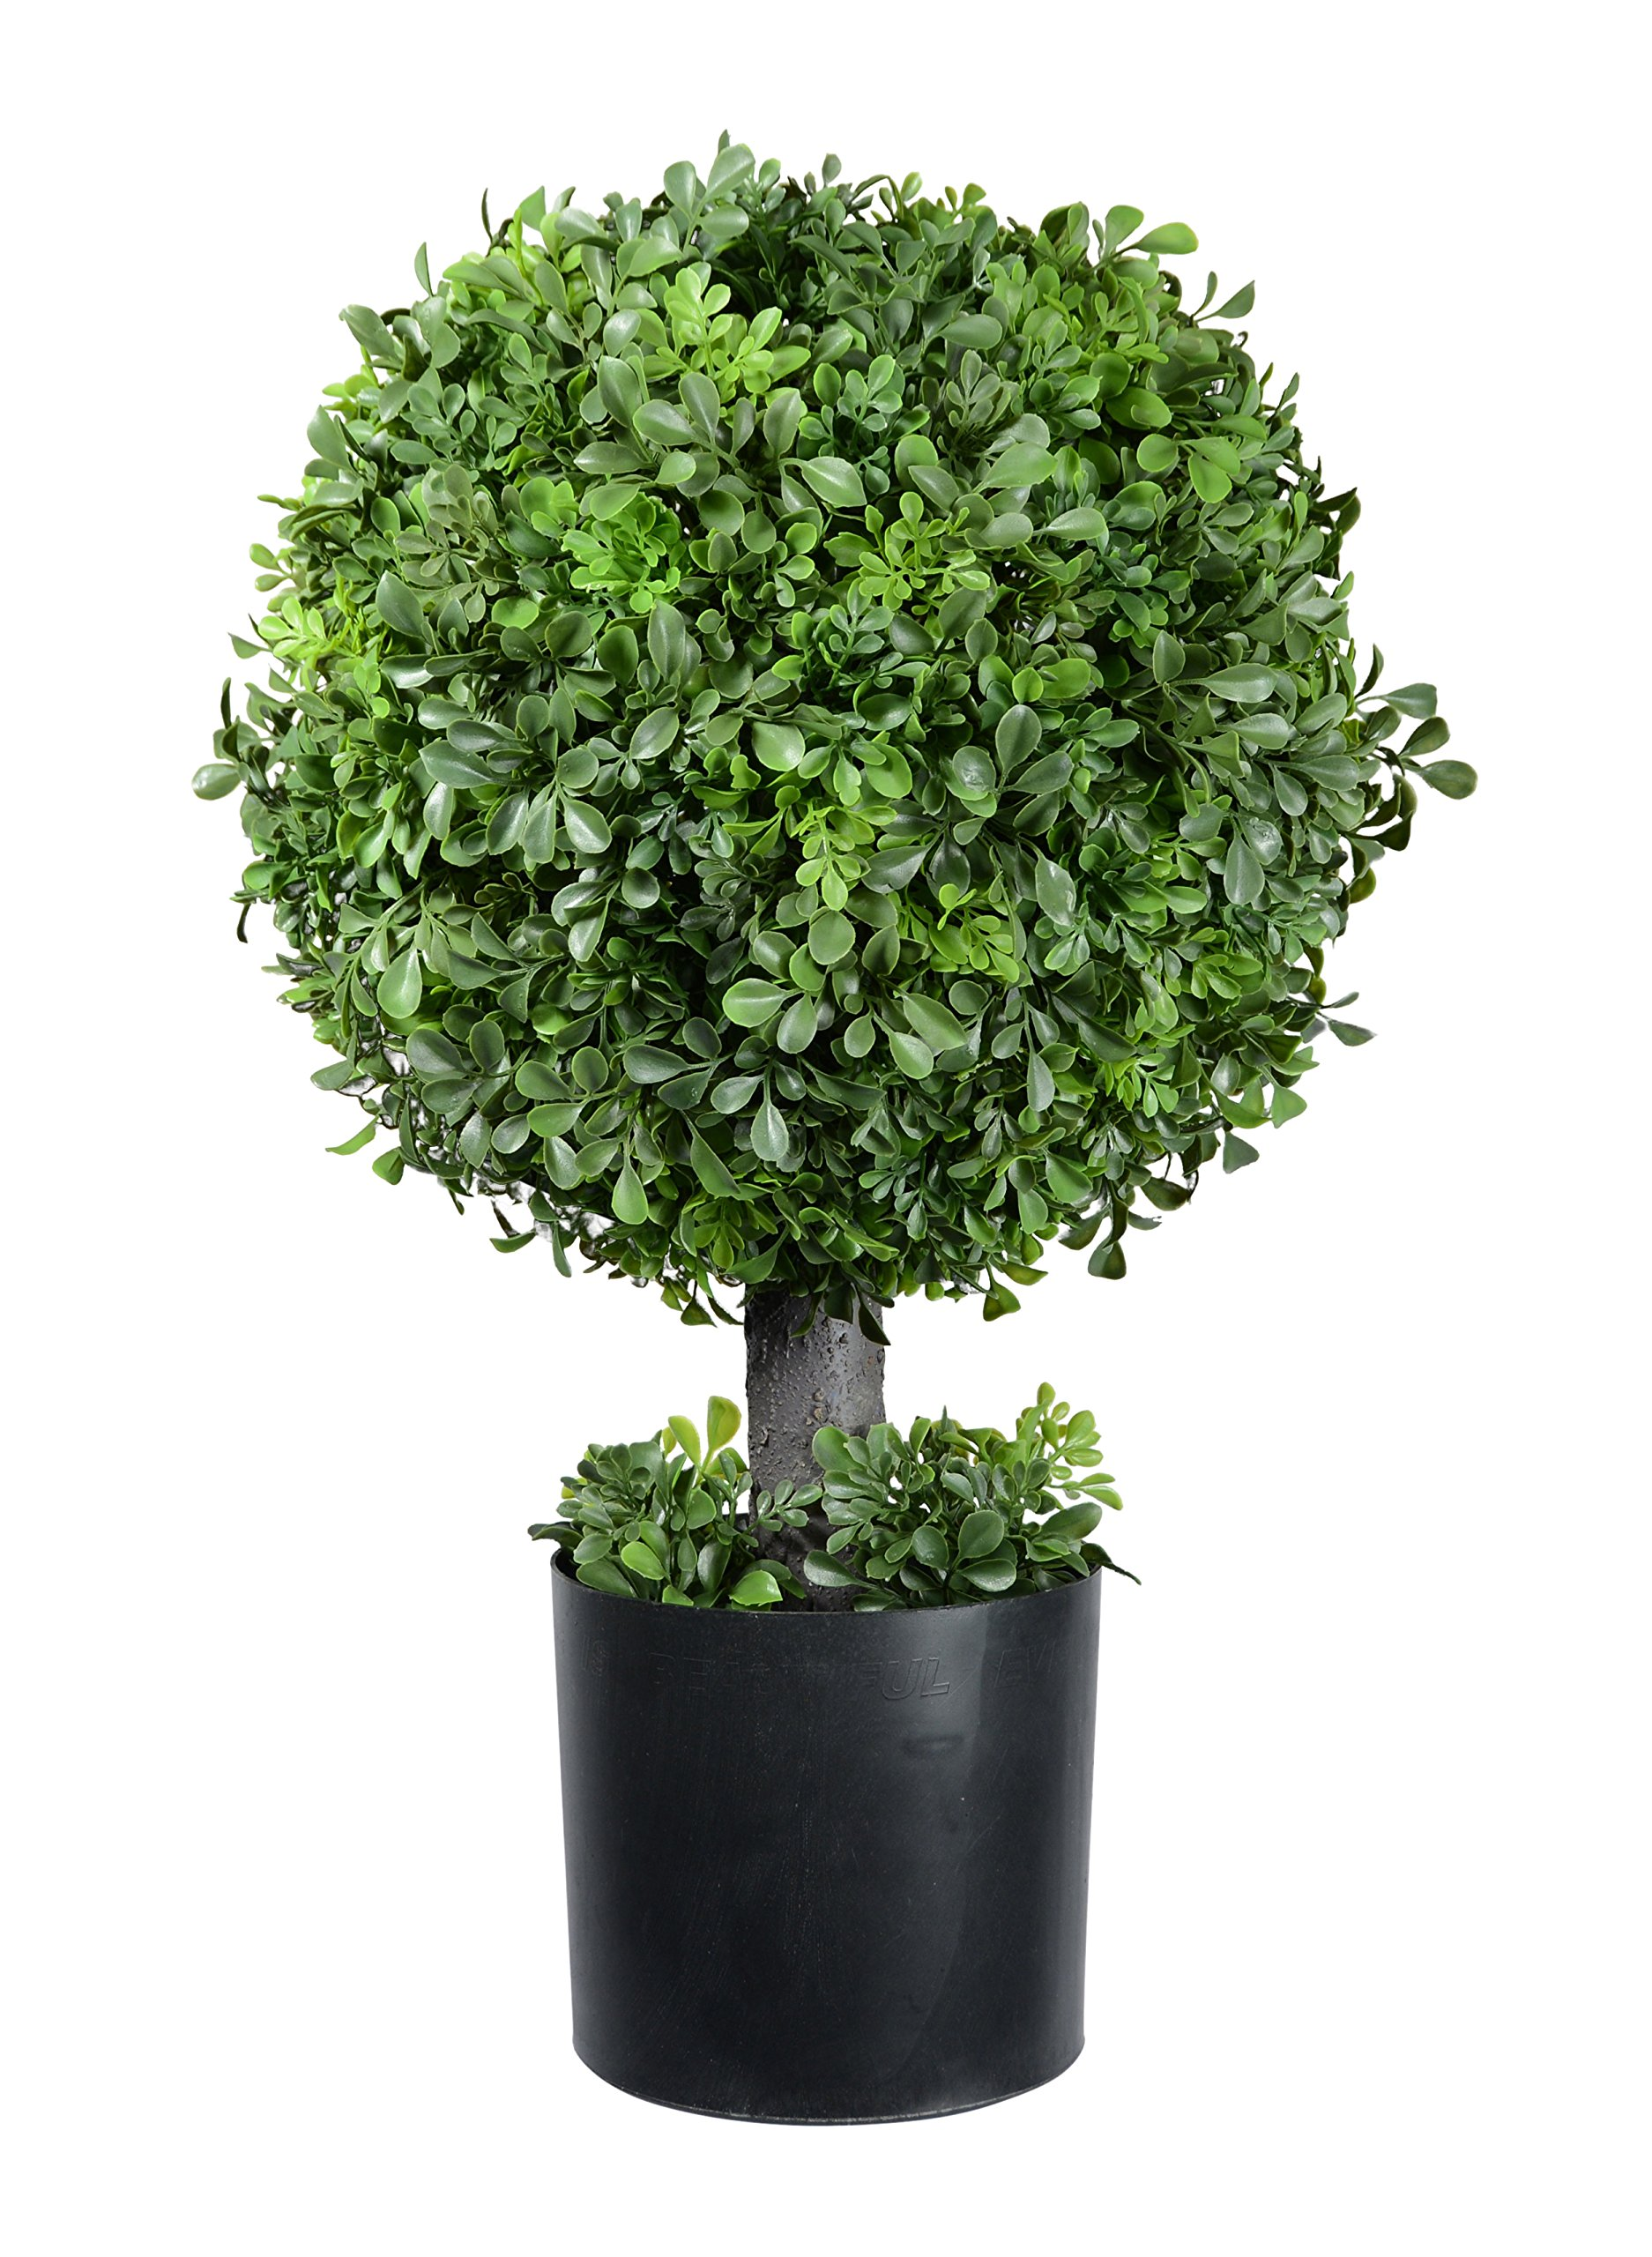 Pre-Potted 22 Inches High Ball Shaped Boxwood Topiary- 14 Inch Diameter - Plastic Pot